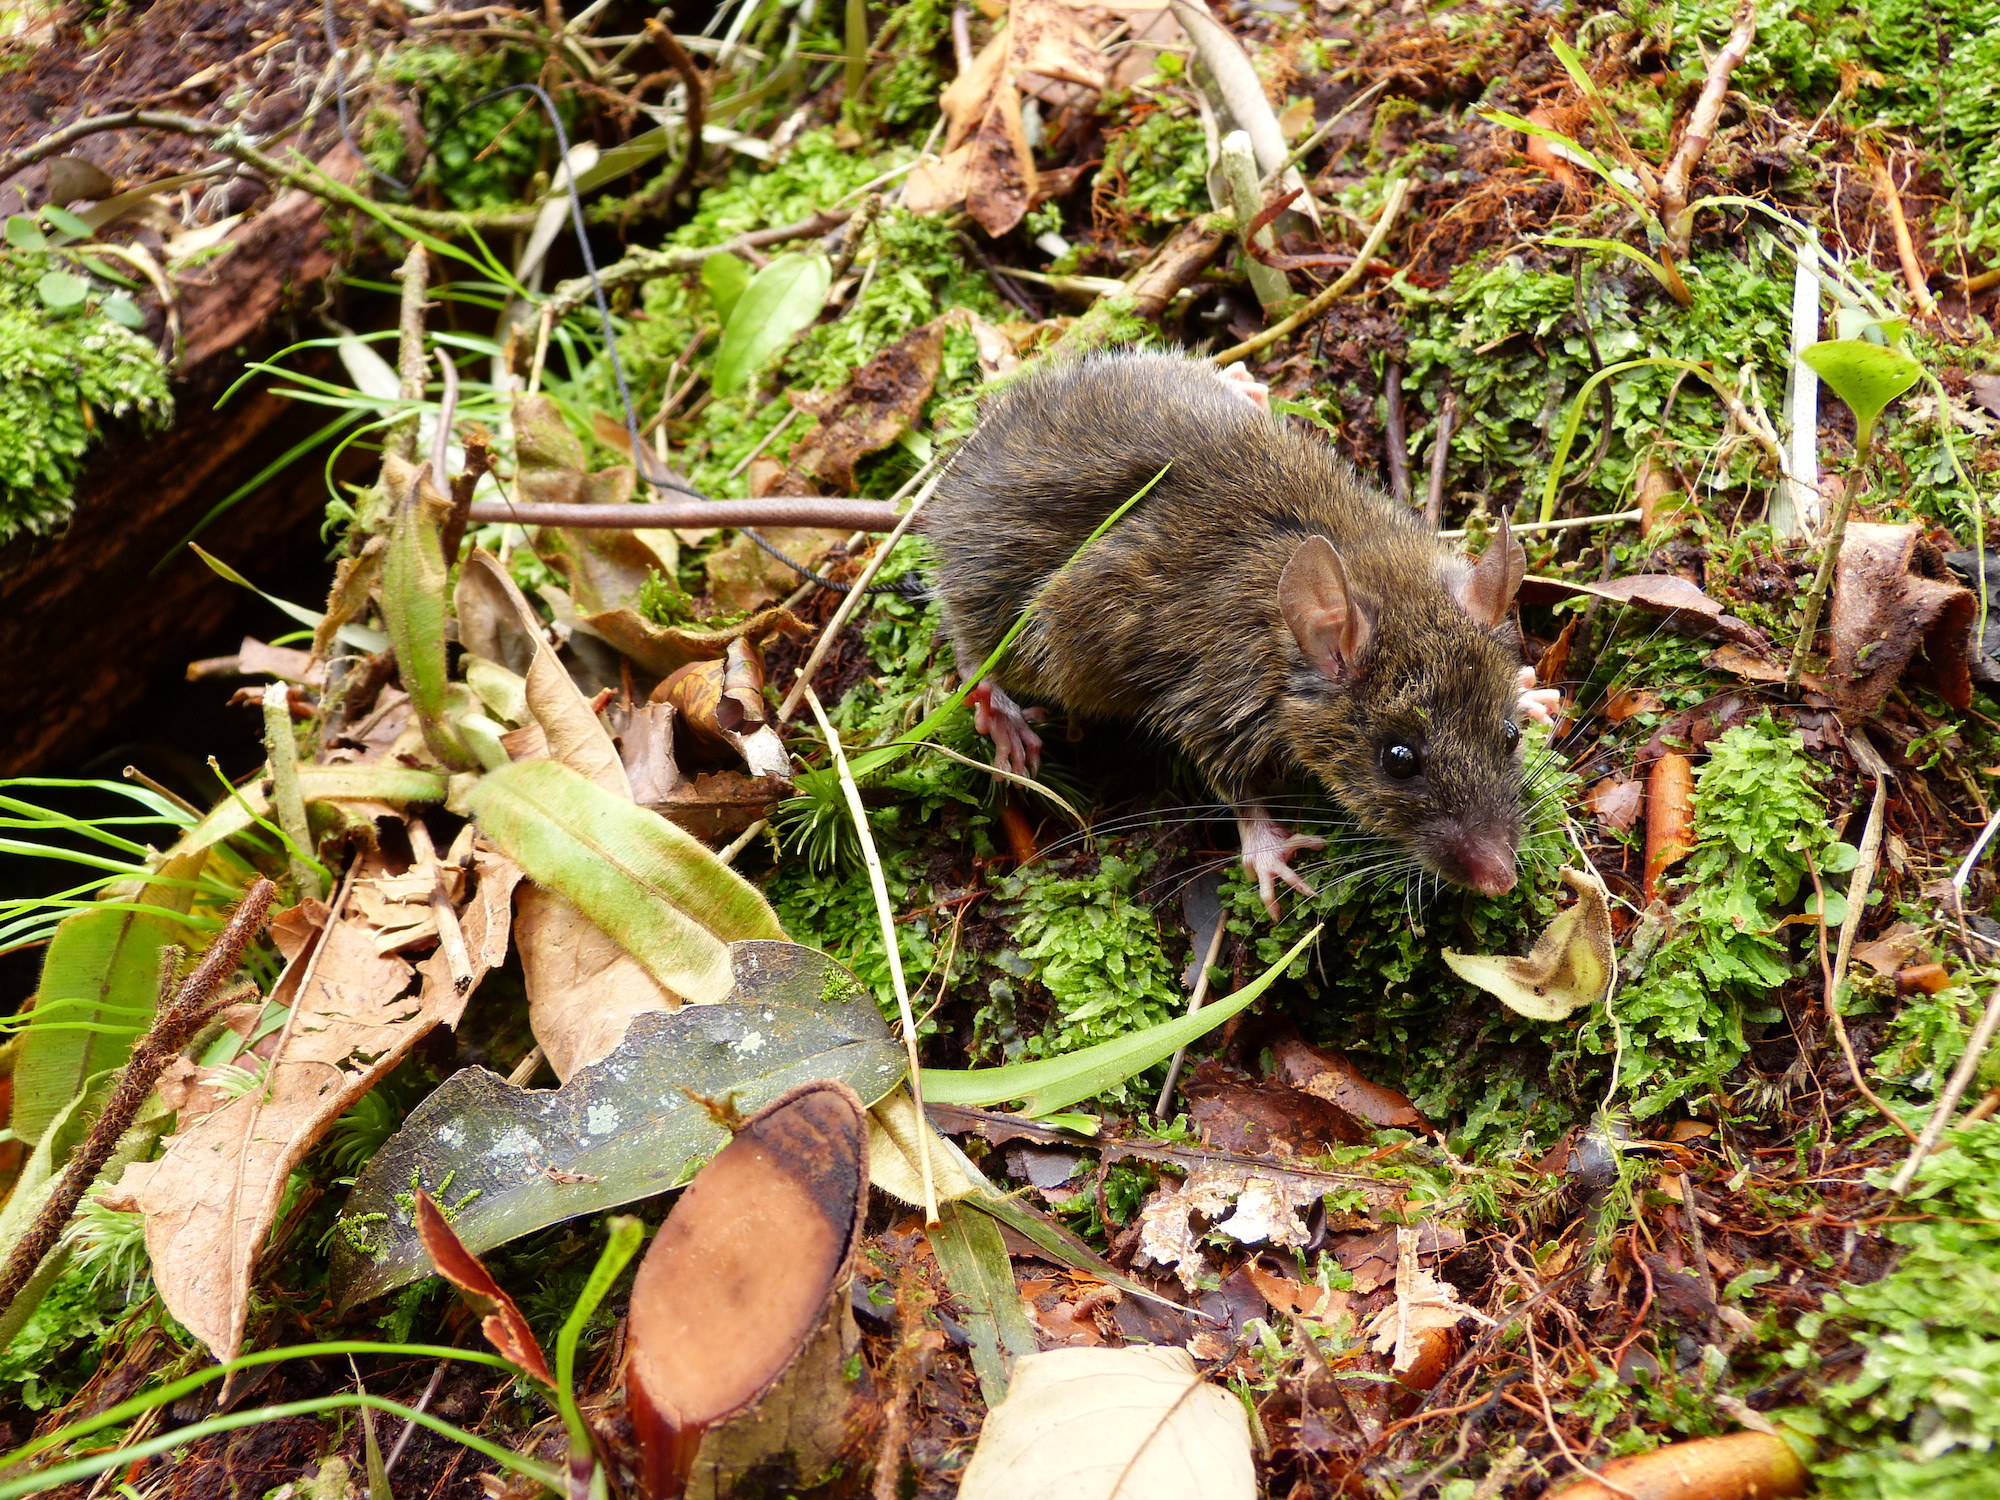 With the discovery of four new types of mice on Mindoro Island in the Philippines, a team of scientists has identified the smallest known island where several species of animals have evolved from one single species.